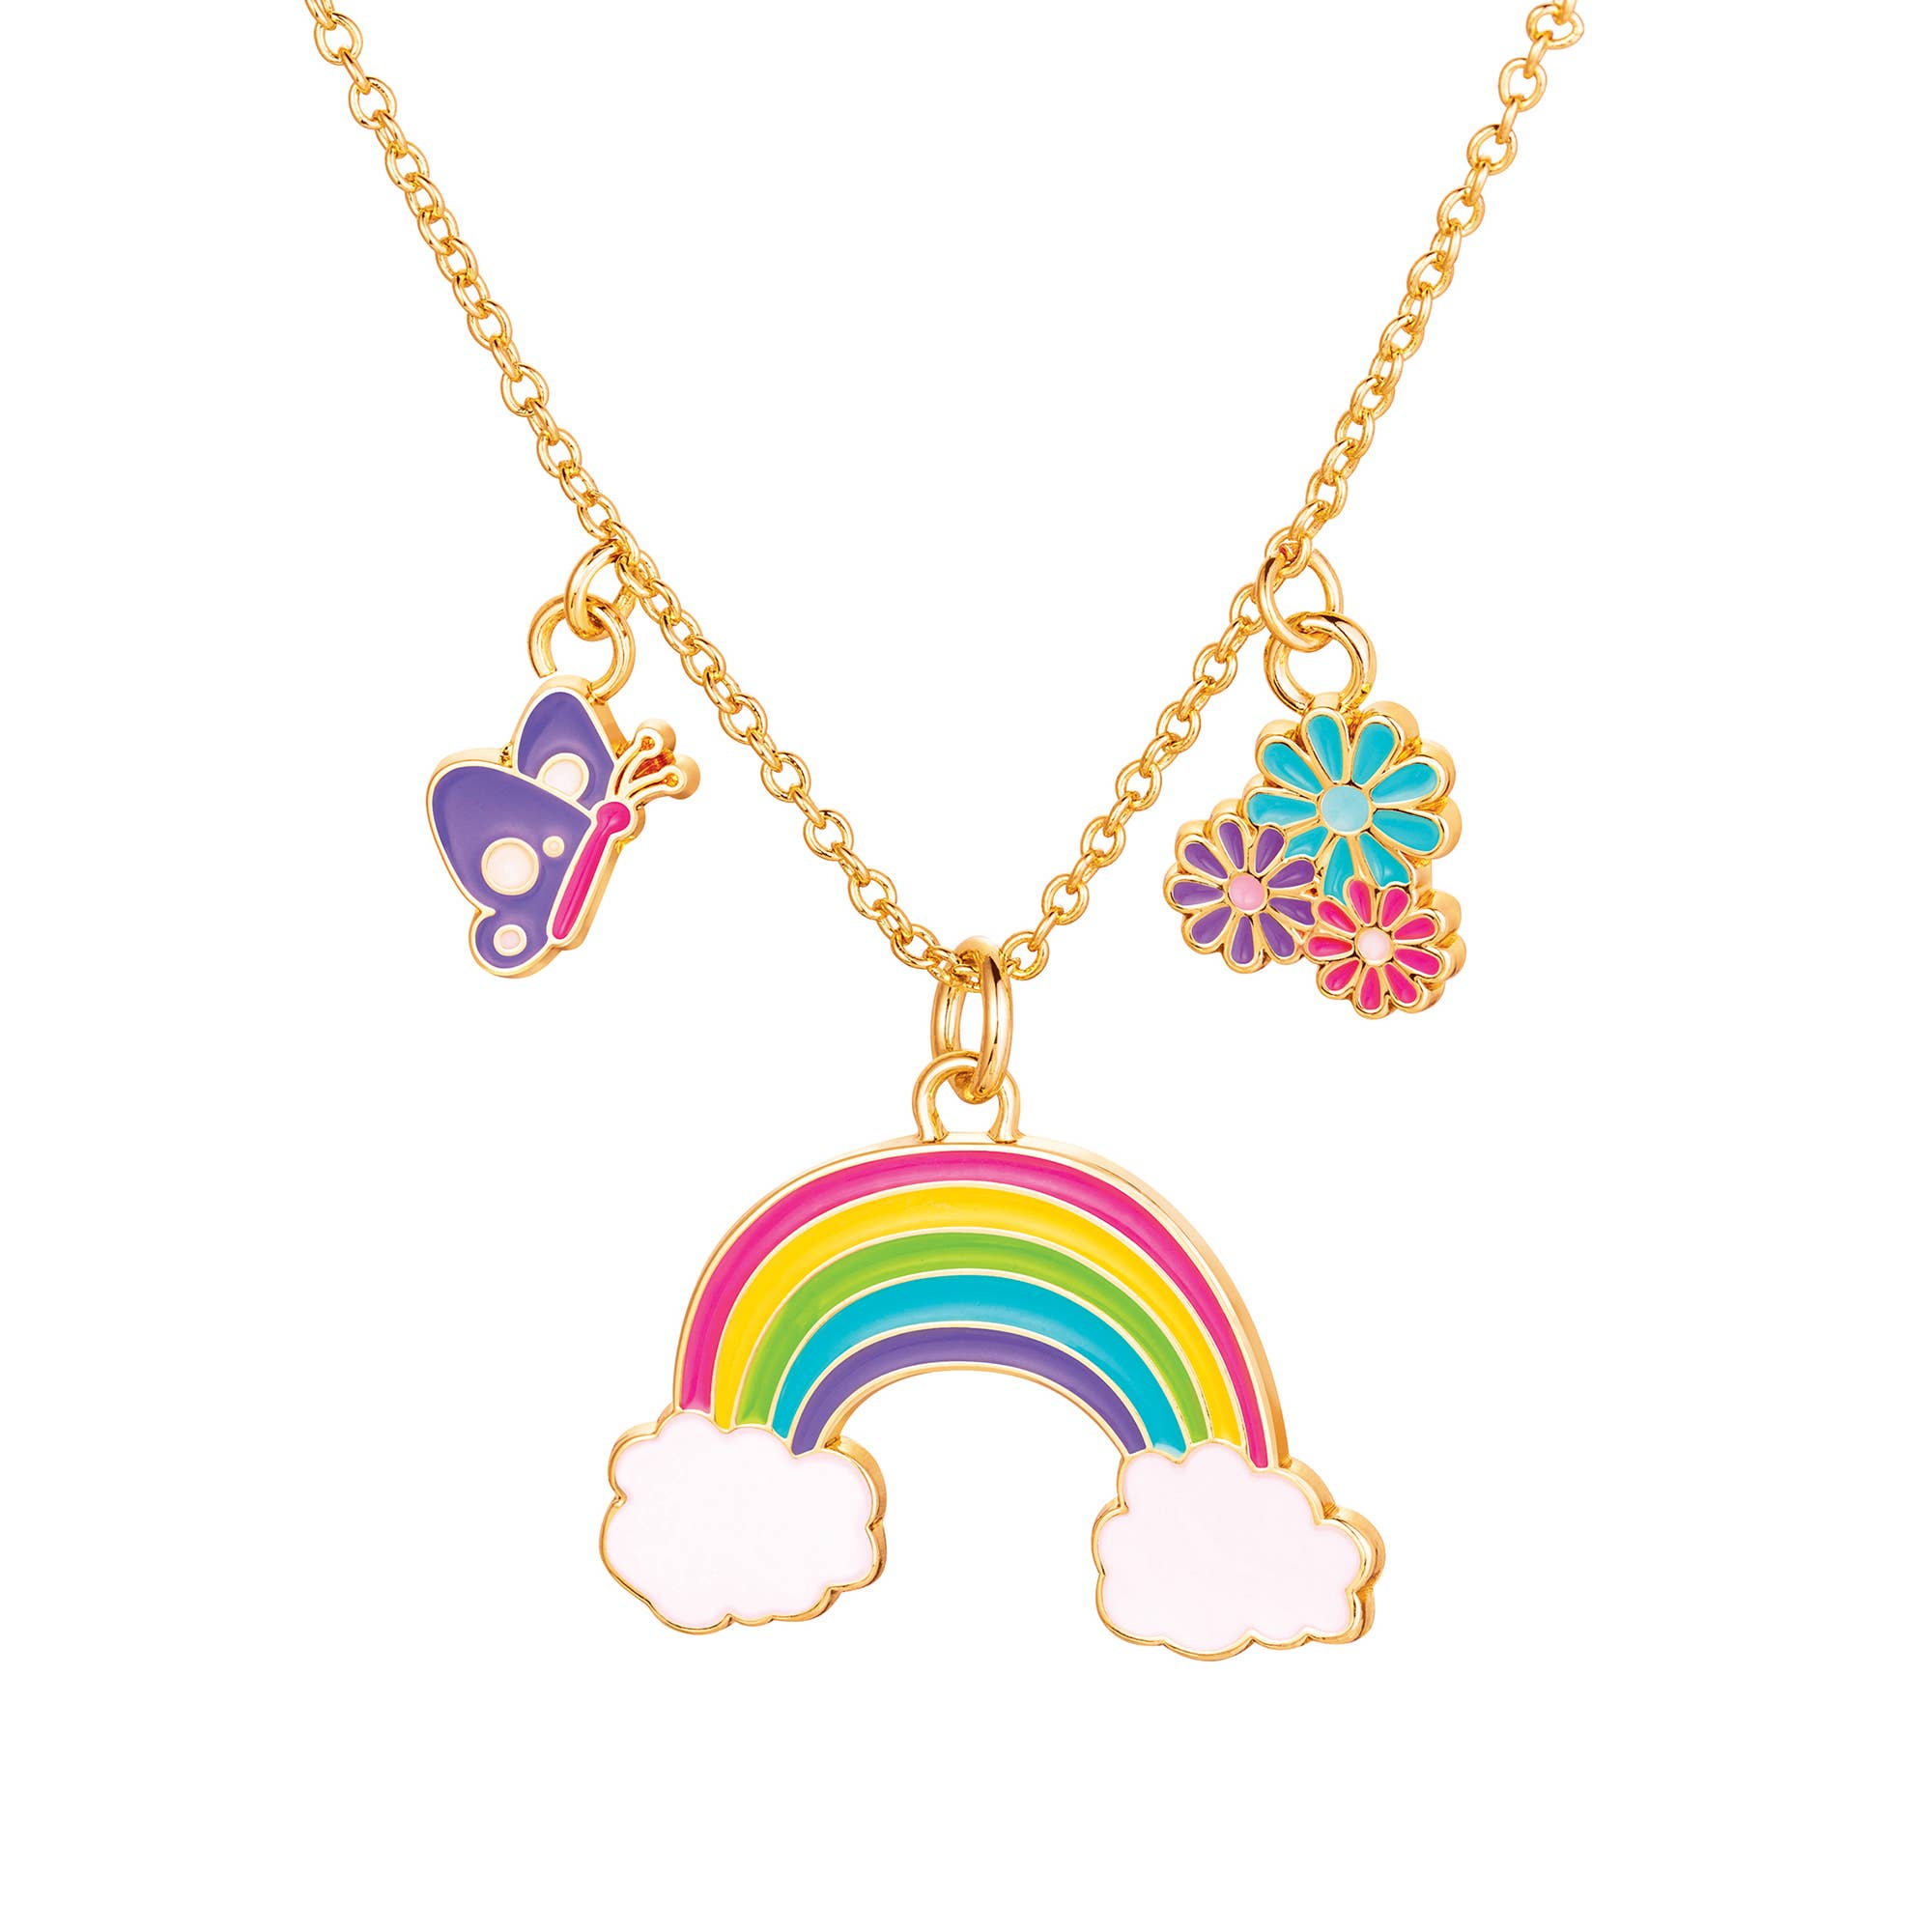 Charming Whimsy Necklace- Cloud Luvs Rainbow | Trada Marketplace